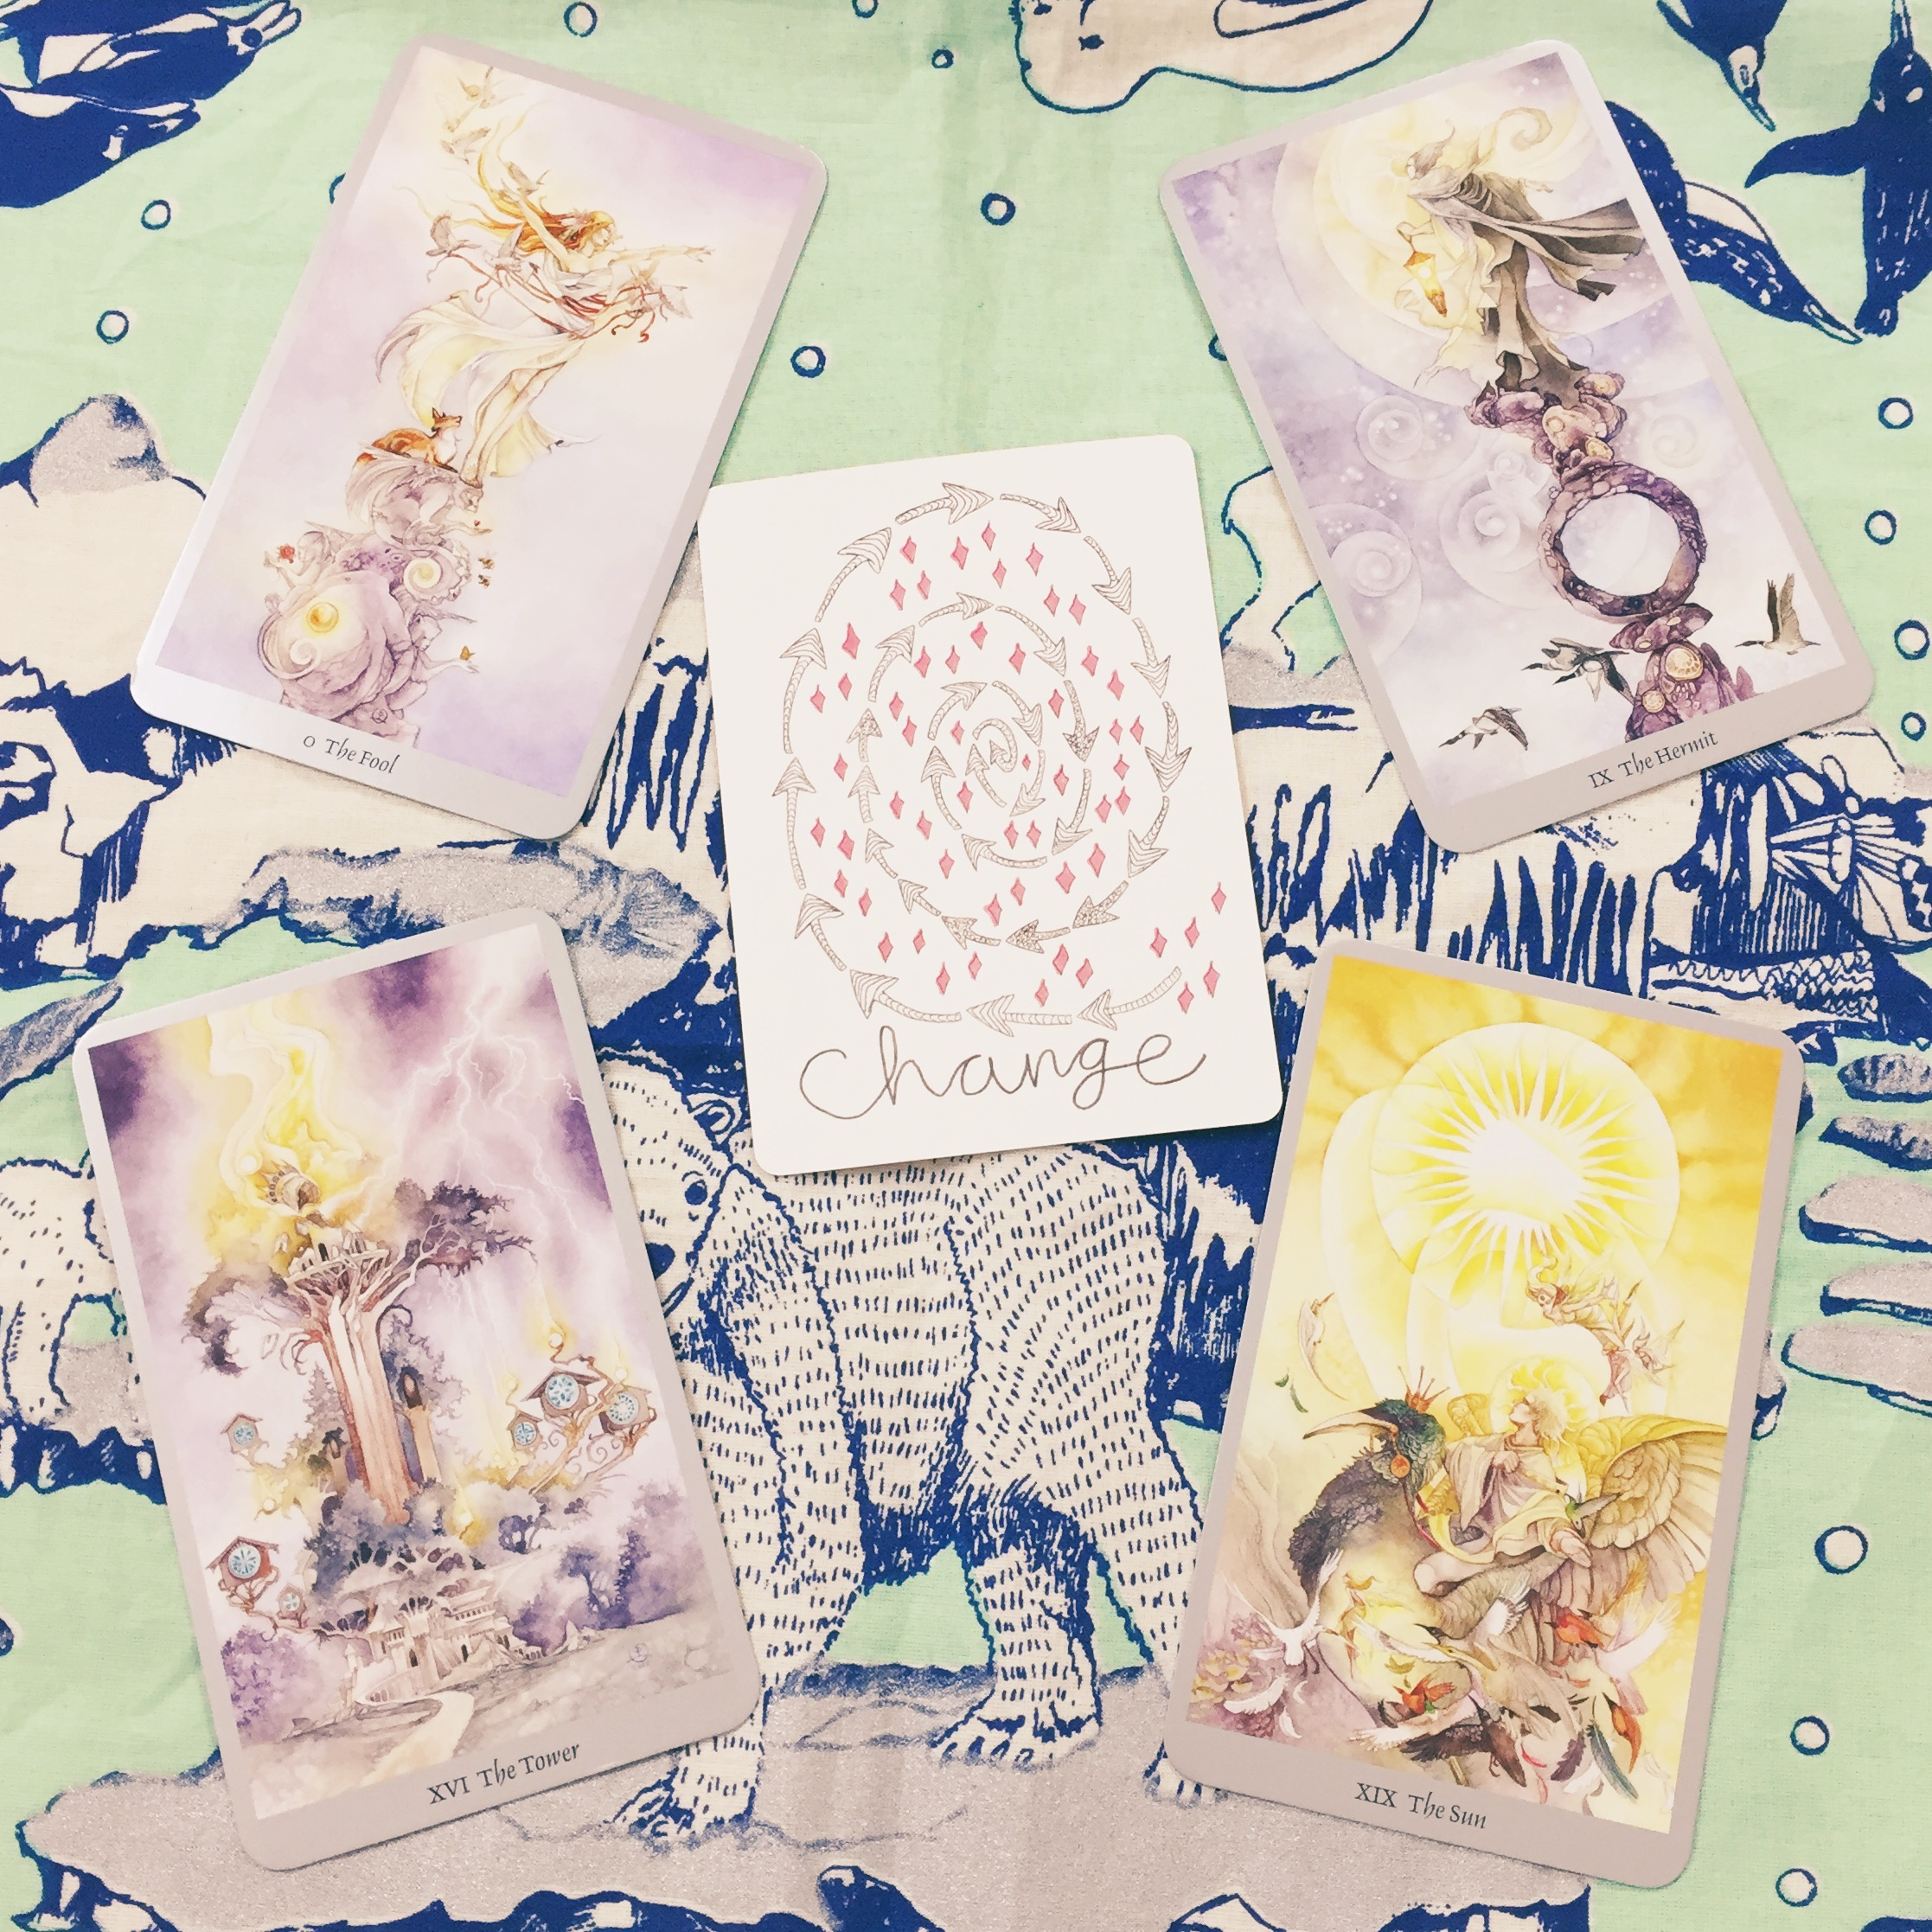 Shadowscapes Tarot + Vessel Oracle x